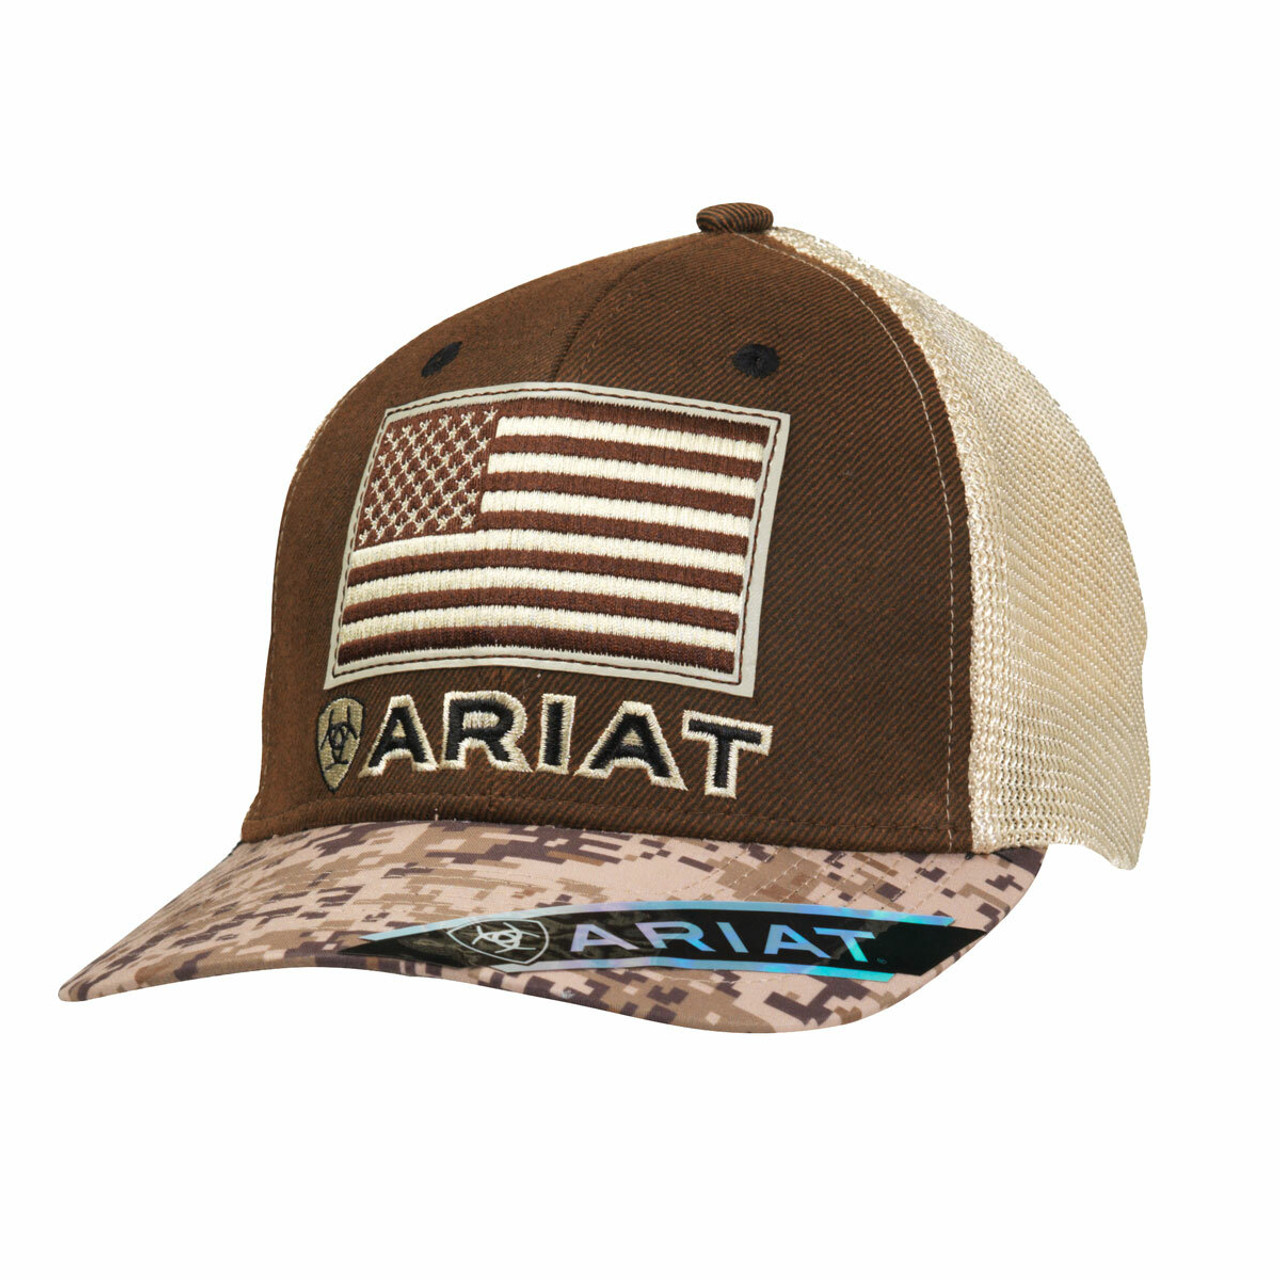 f6cb103a2b7e7 Men s Ariat Digital Camo Cap by M F 1510502 - Cowtown Cowboy Outfitters